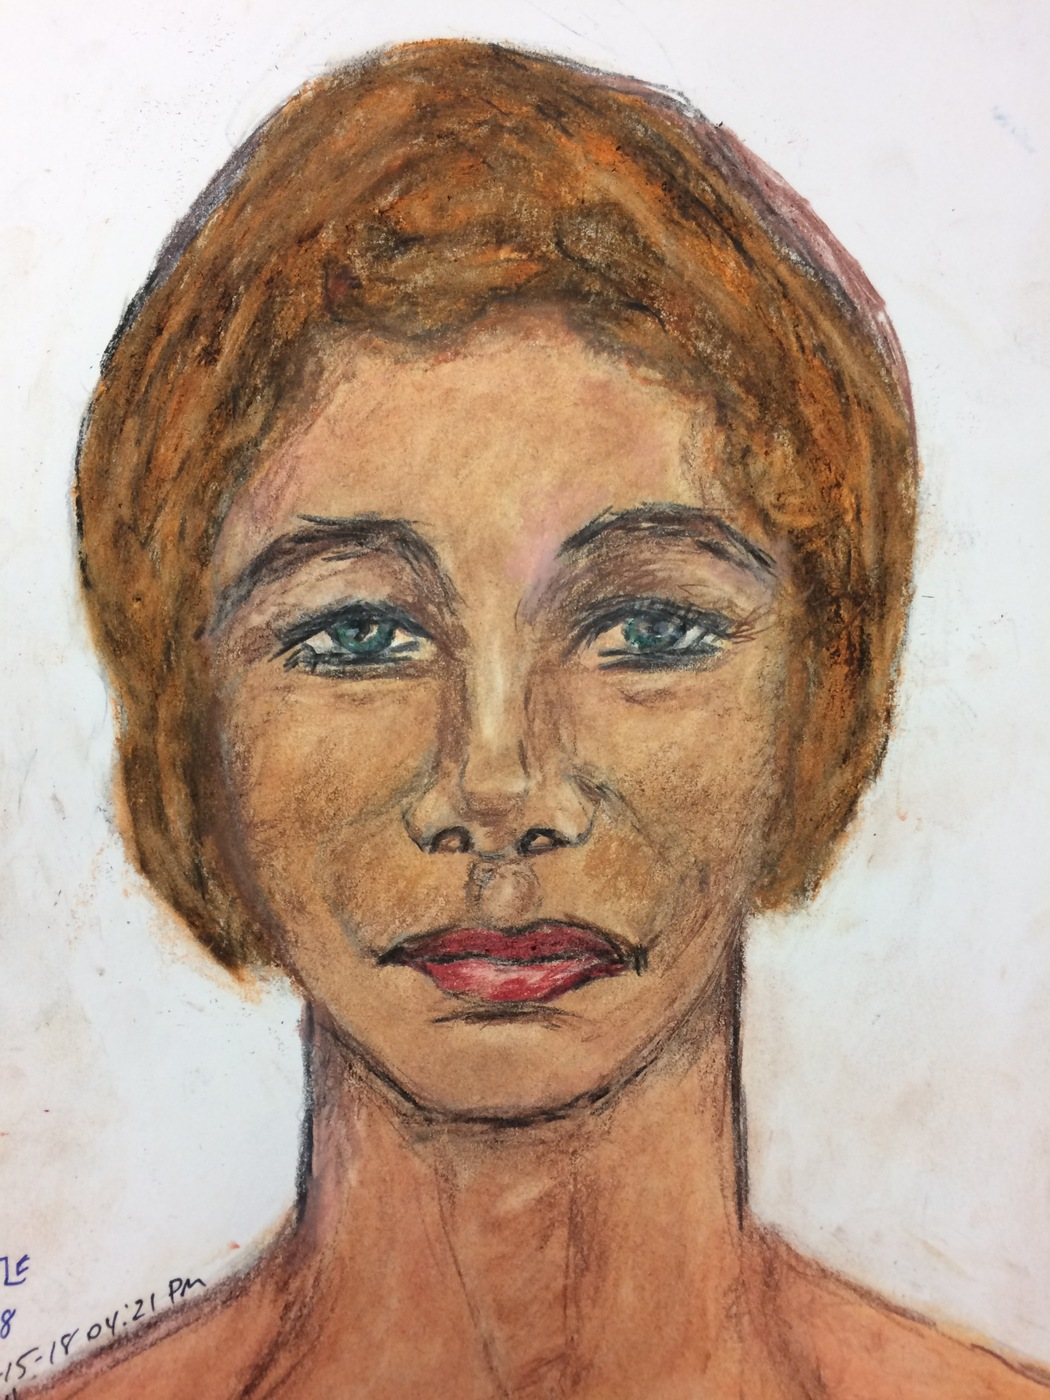 Samuel Little Drawing of White Female Victim (Killed in 1984, Covington, Kentucky)